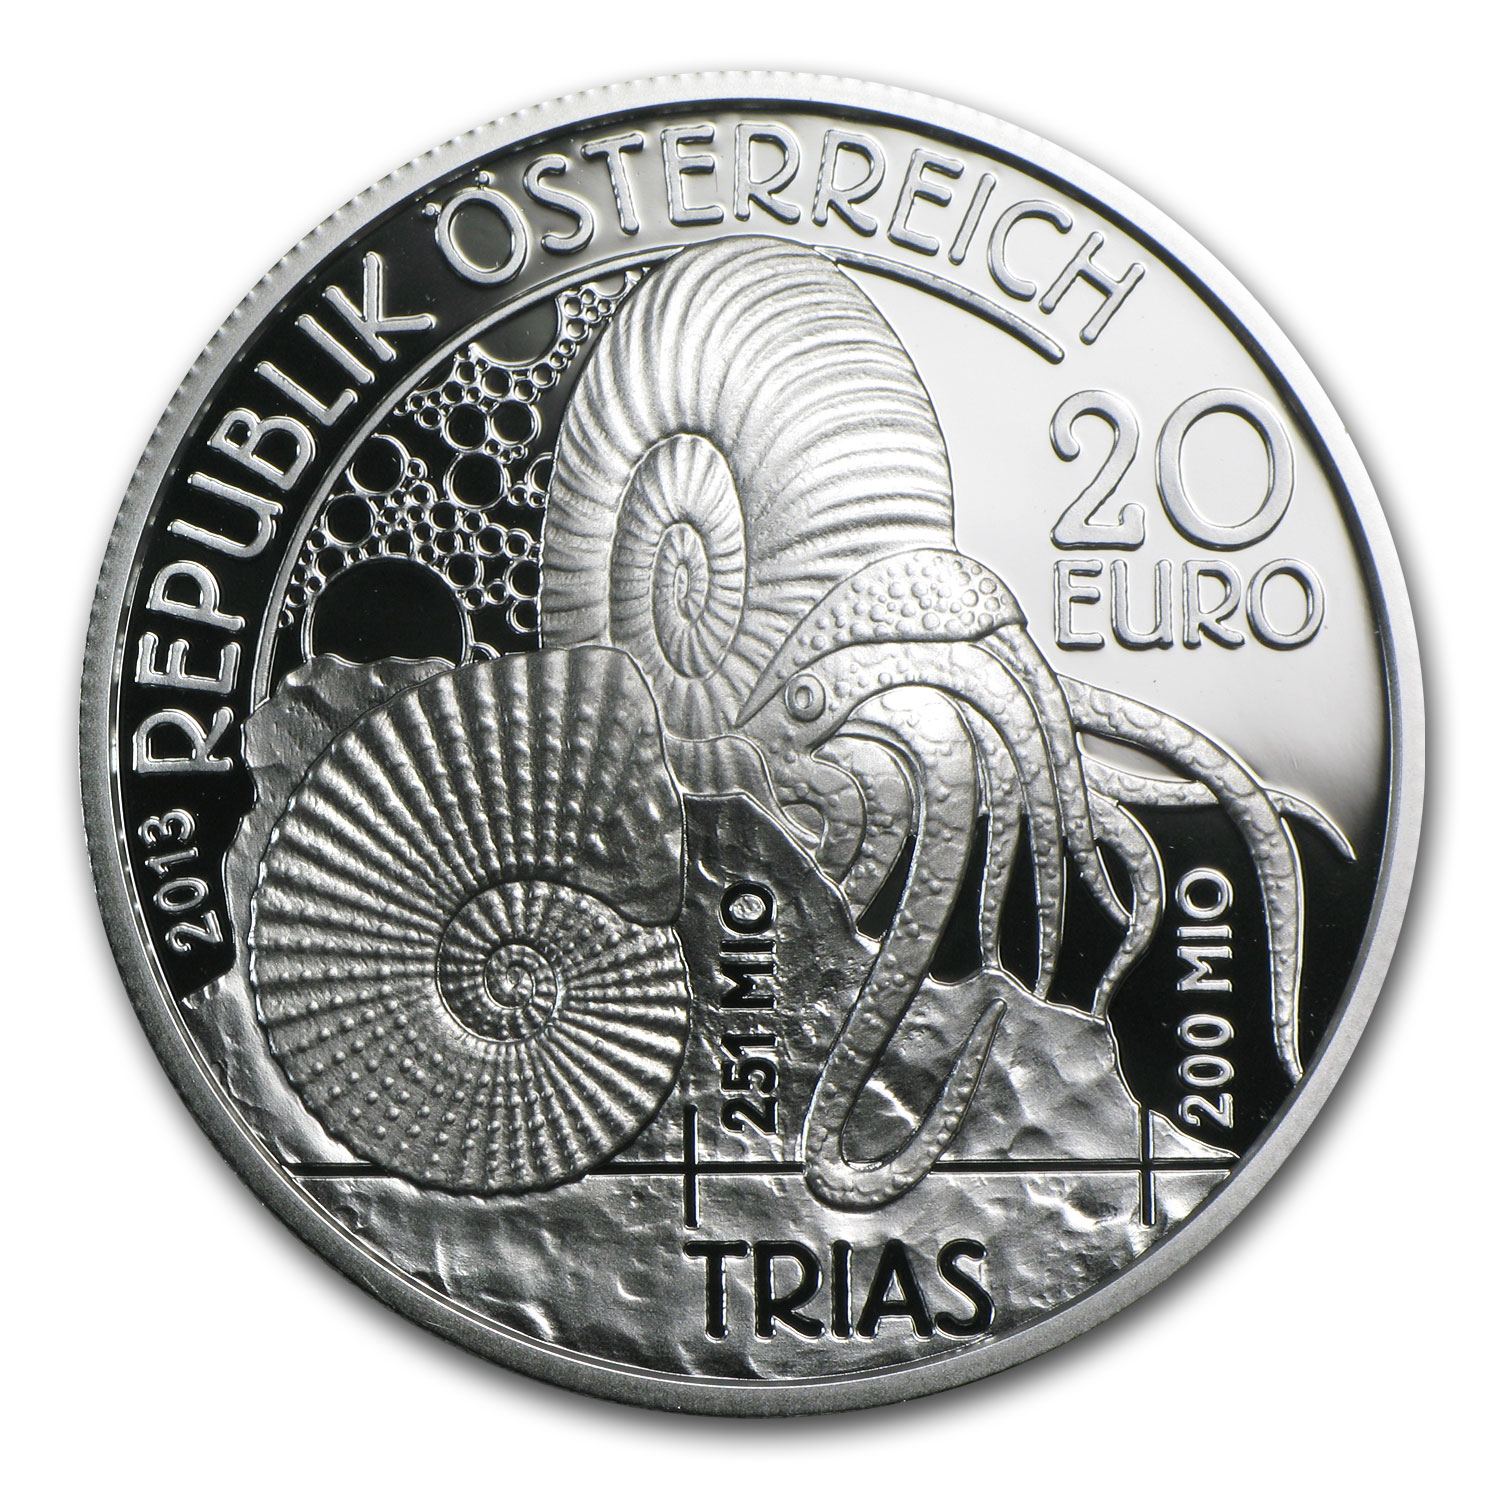 2013 Triassic 'Life In The Water' 20 Euro Silver Coin ASW 0.5209